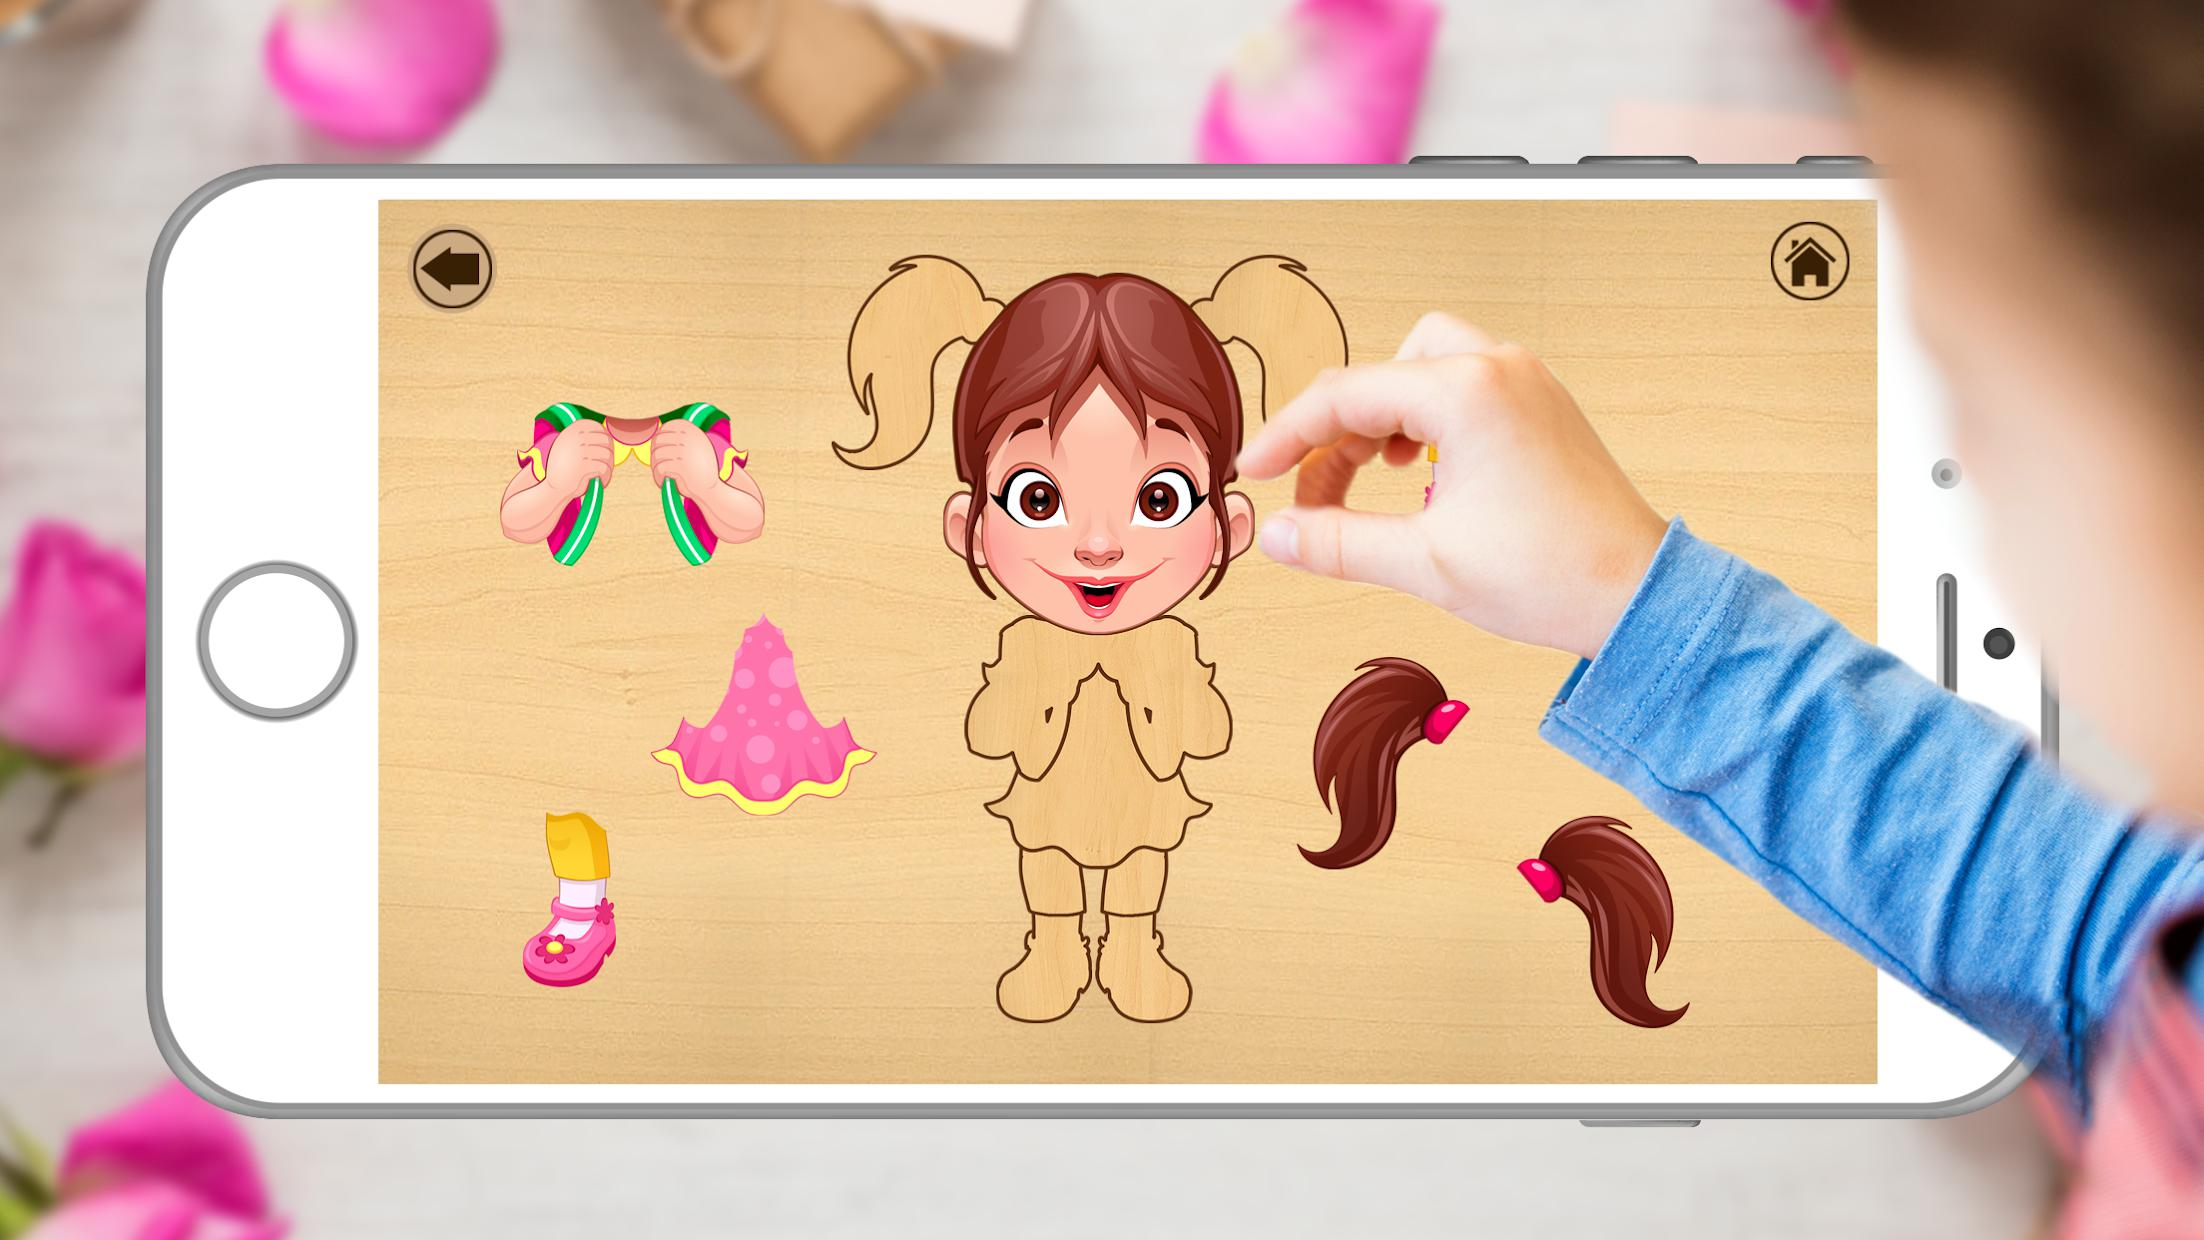 Kids Jigsaw Toddlers Puzzle Game 游戏截图4